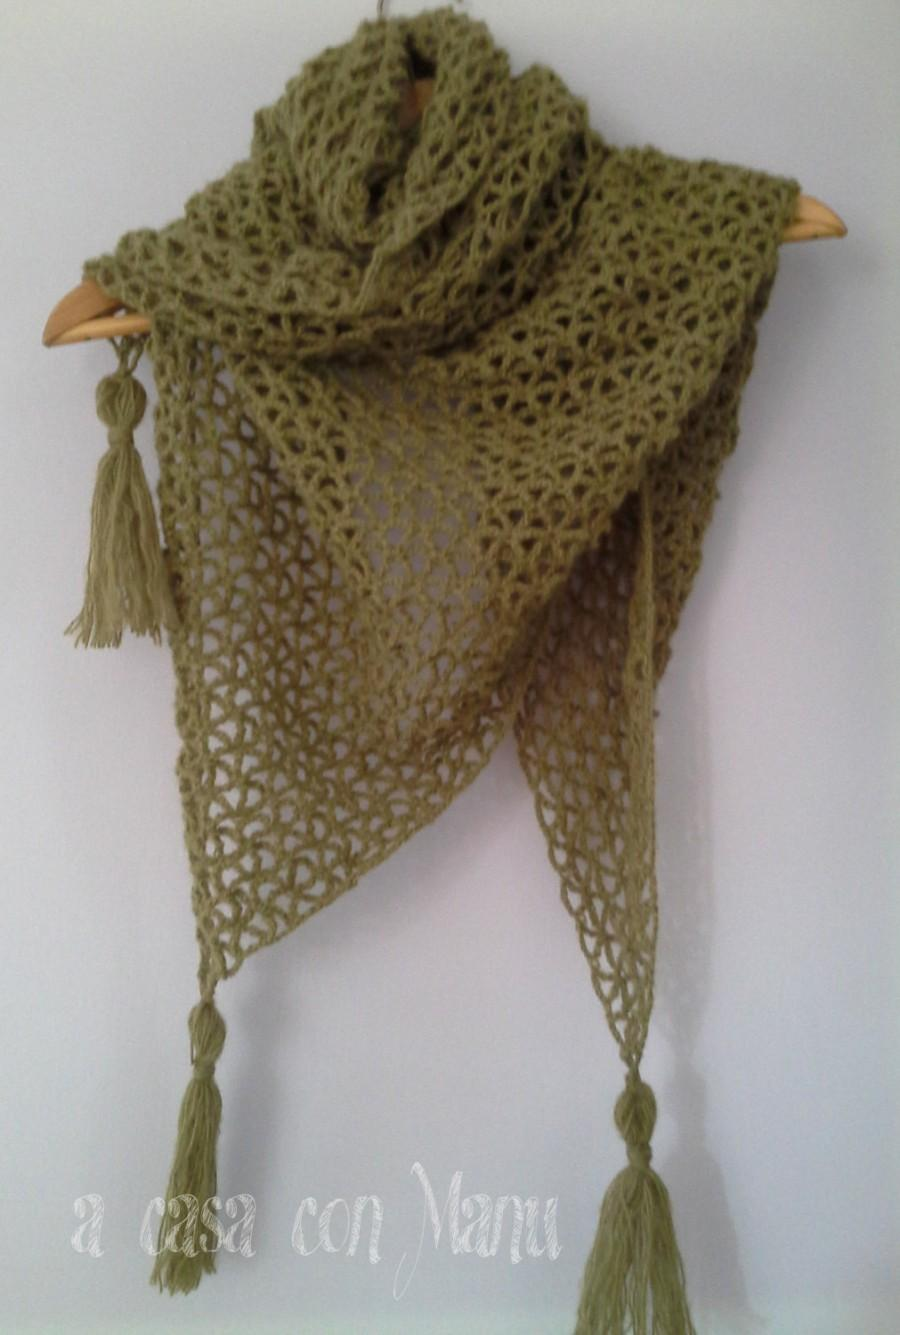 Mariage - Caldo scialle in lana, warm shawl in wool, dark green,  shawl, crocheted shawl, handmade, made in Italy